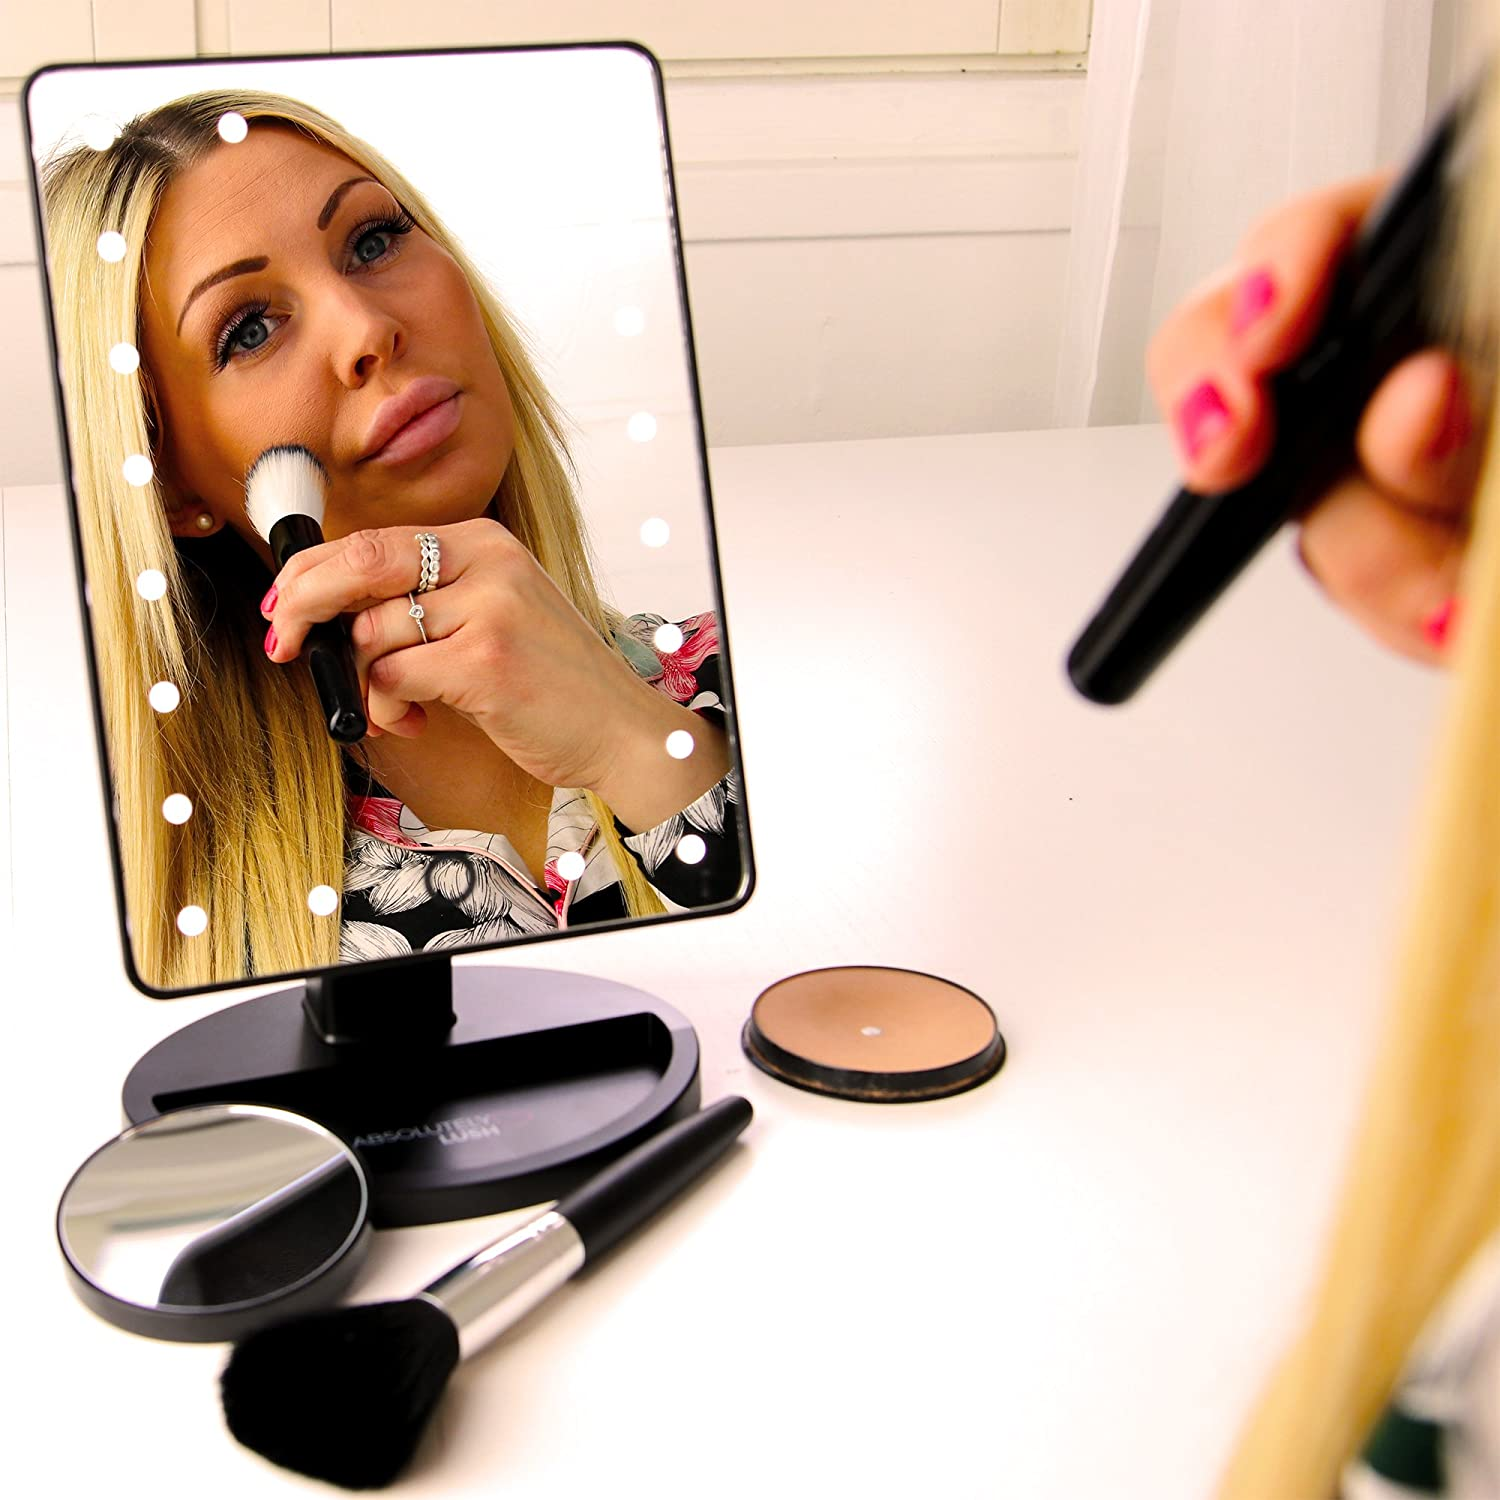 The 5 Best Makeup Mirrors In 2020: Compact, Lighted And Cordless 2